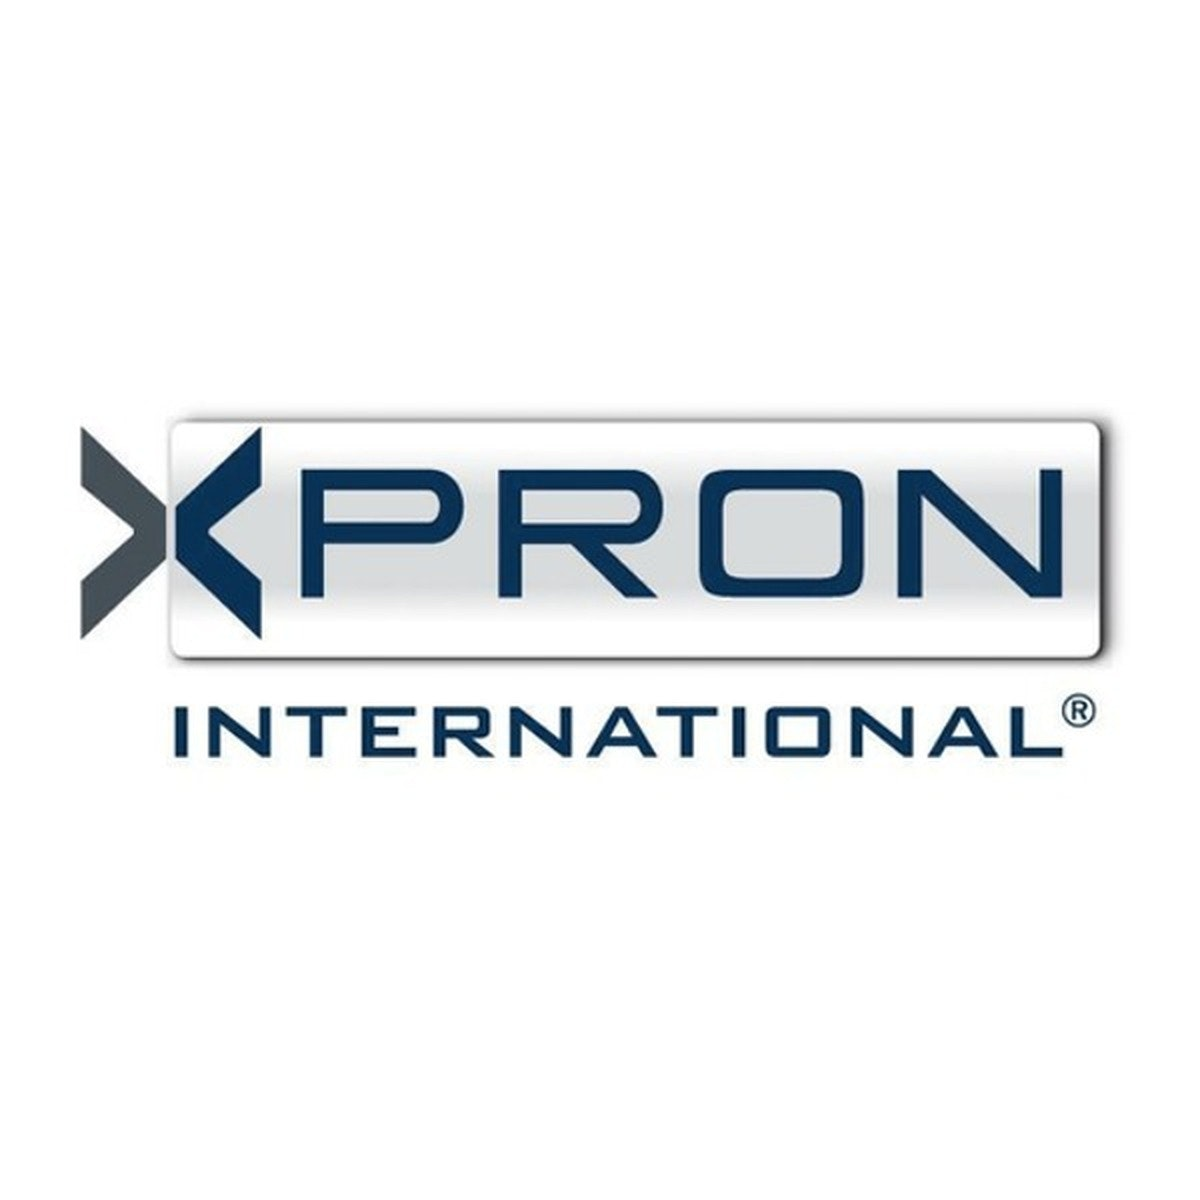 XPRON Systems GmbH